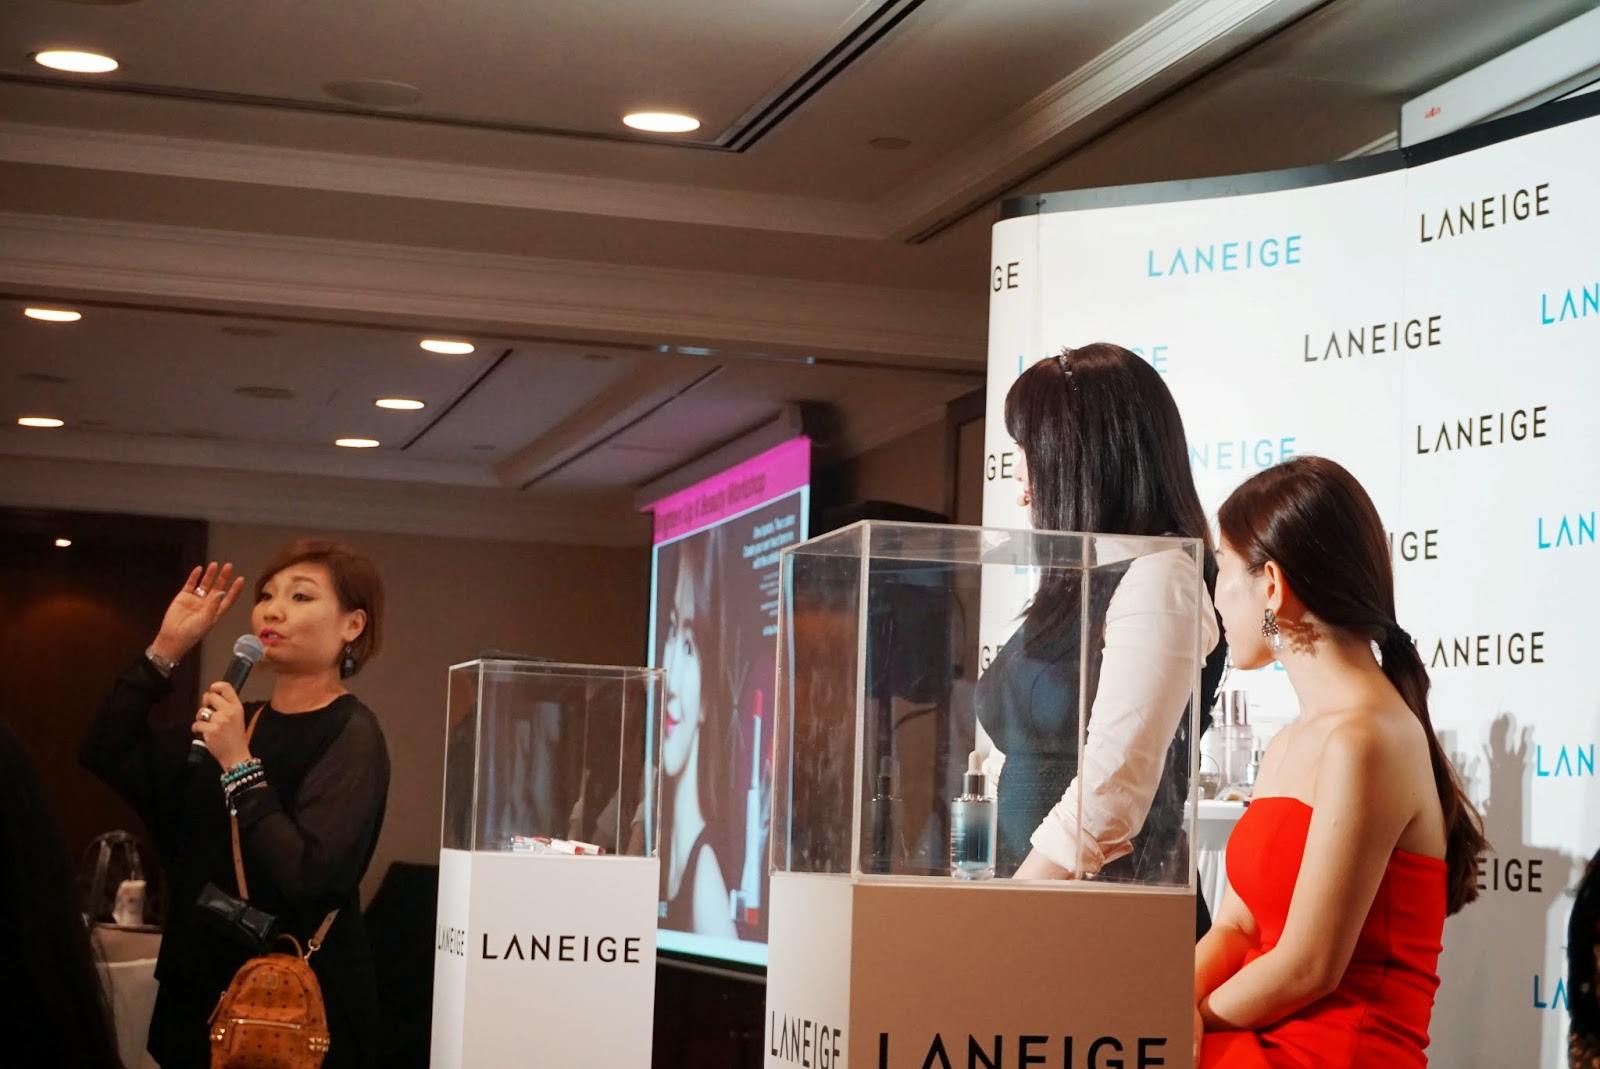 Laneige Singapore workshop